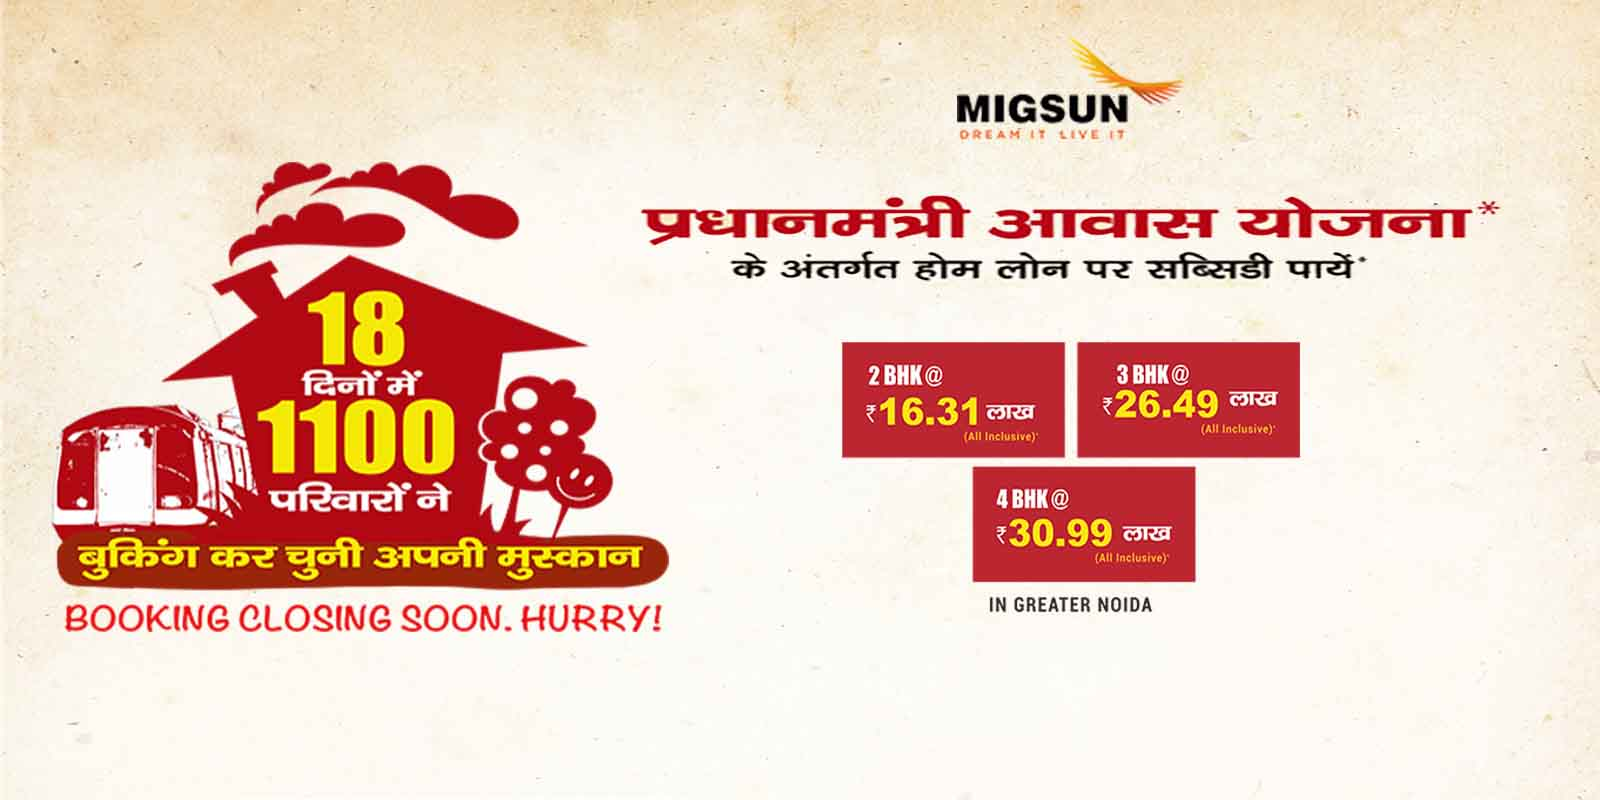 Migsun Vilaasa 2,3BHK for booking call us: +919210333666